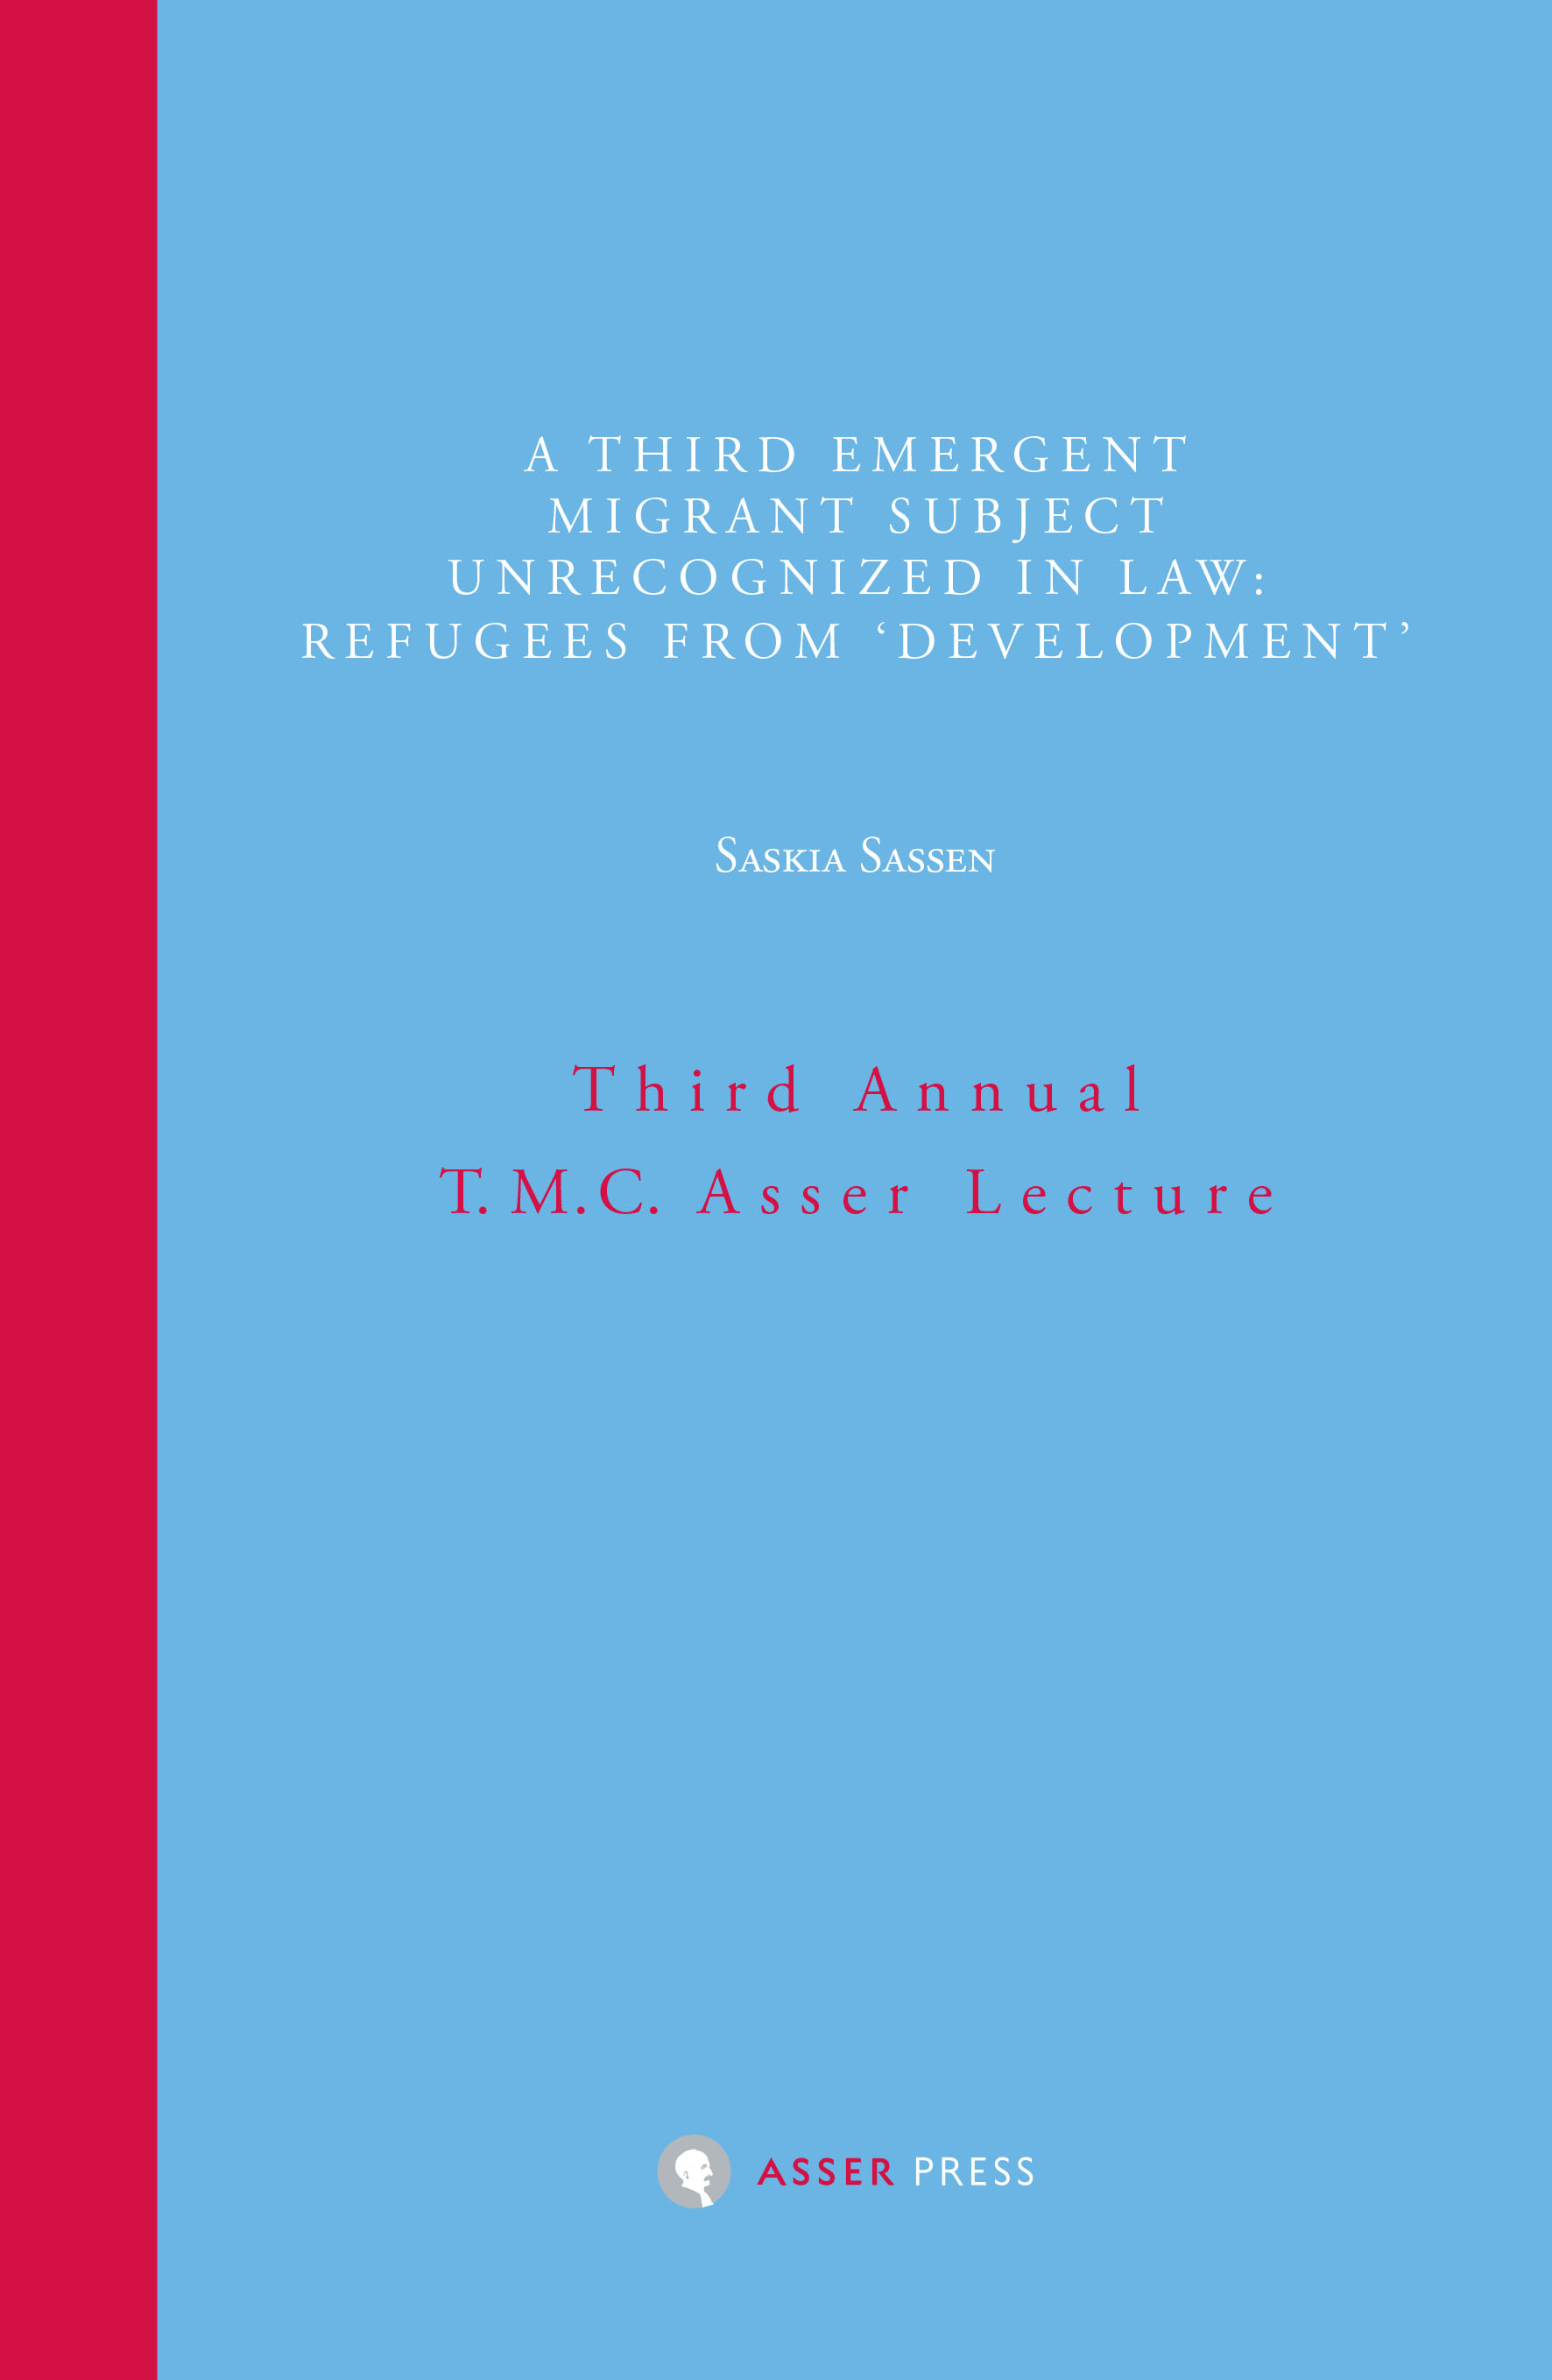 A Third Emergent Migrant Subject Unrecognized in Law: Refugees from 'Development' - Third Annual T.M.C. Asser Lecture